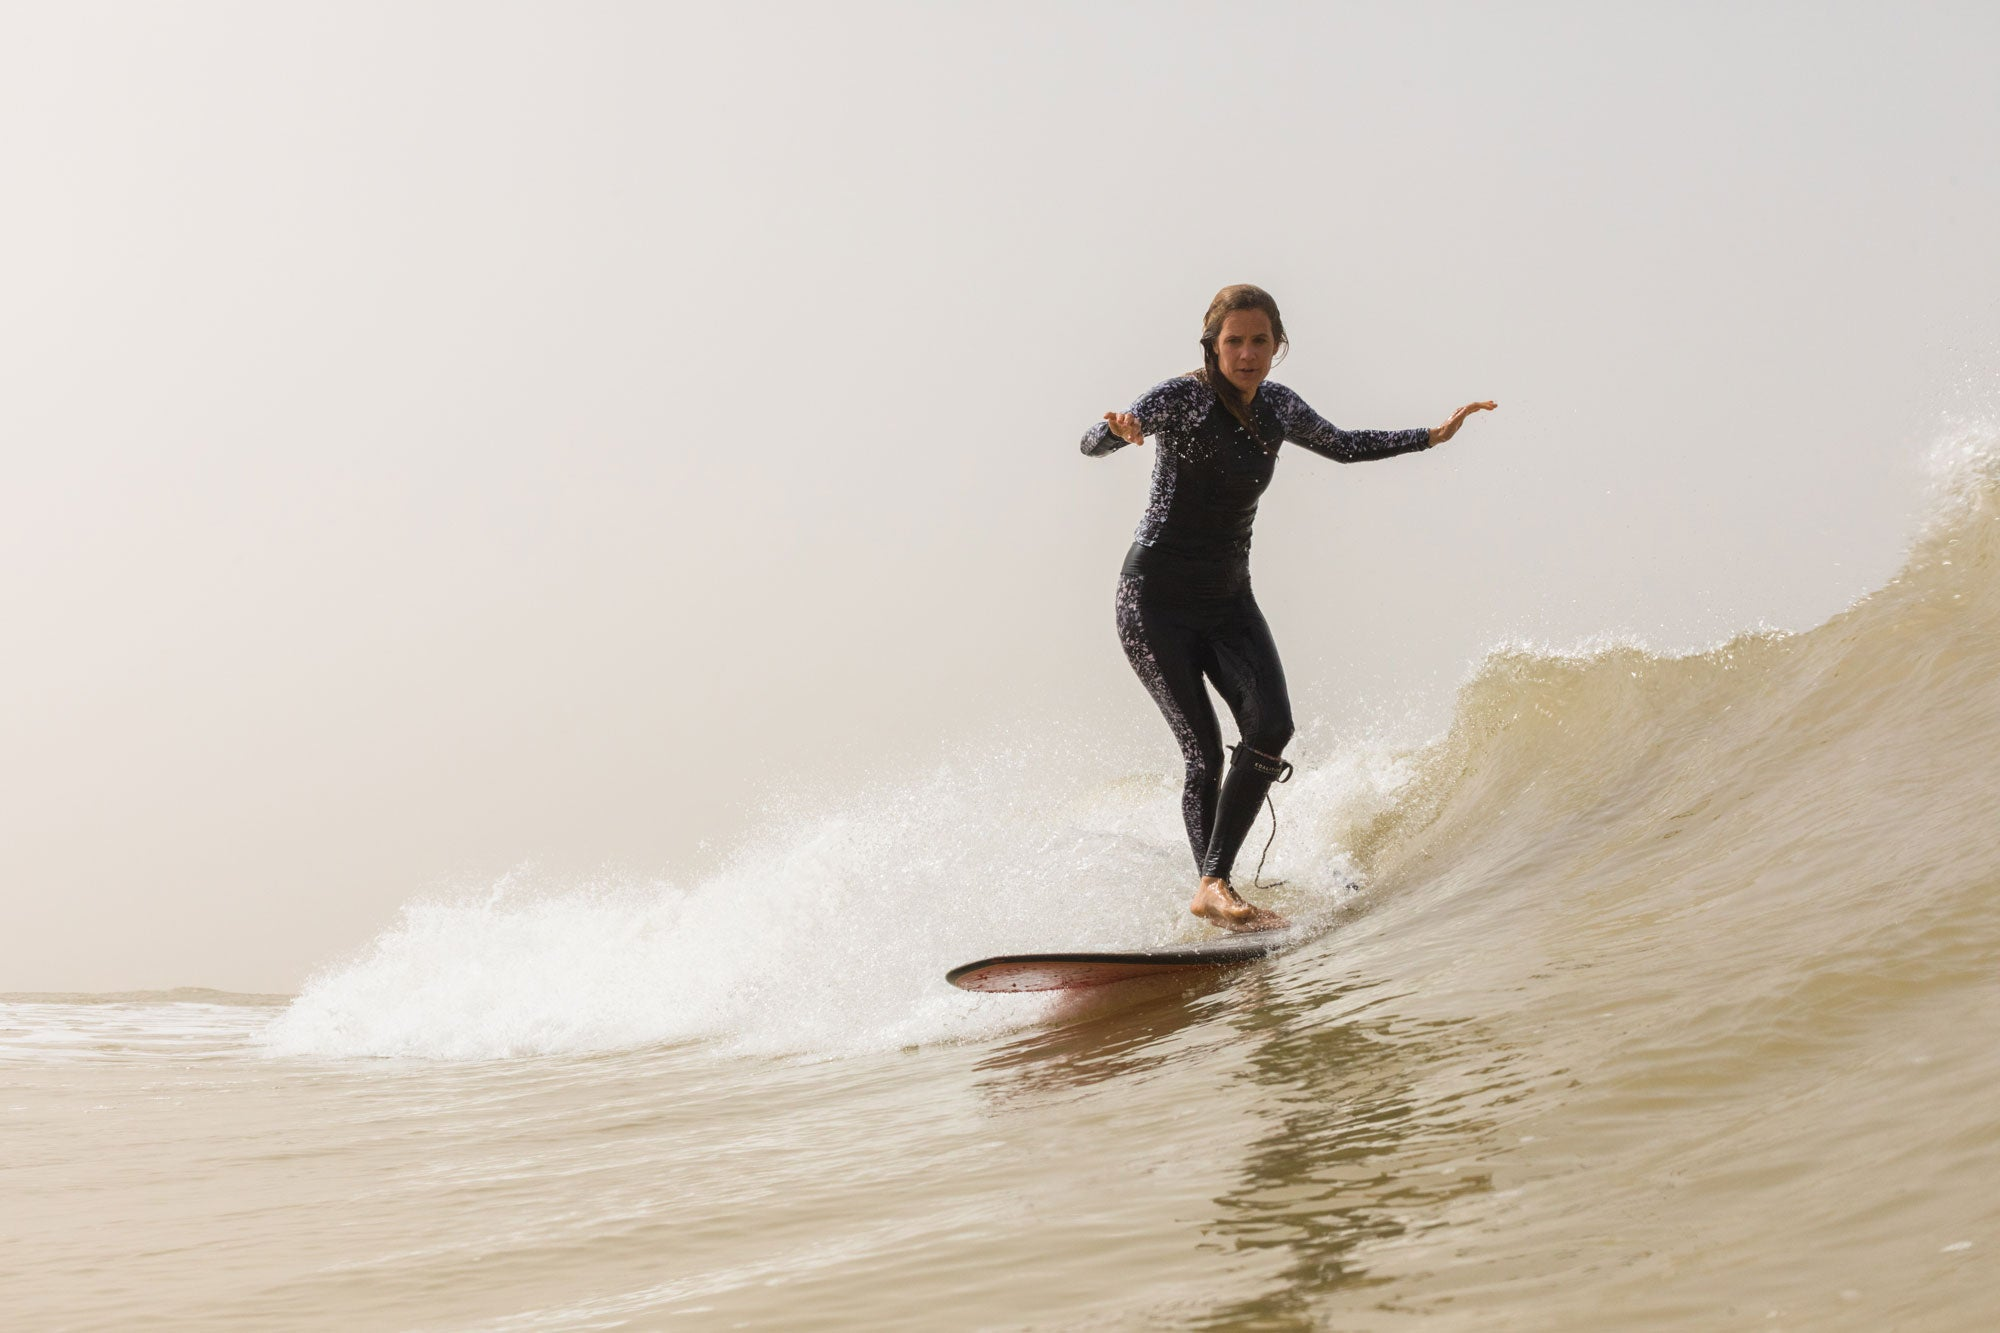 Head-of-Finisterre-repairs-Amy-Brock-Morgan-with-some-smooth-cross-stepping-on-her-longboard